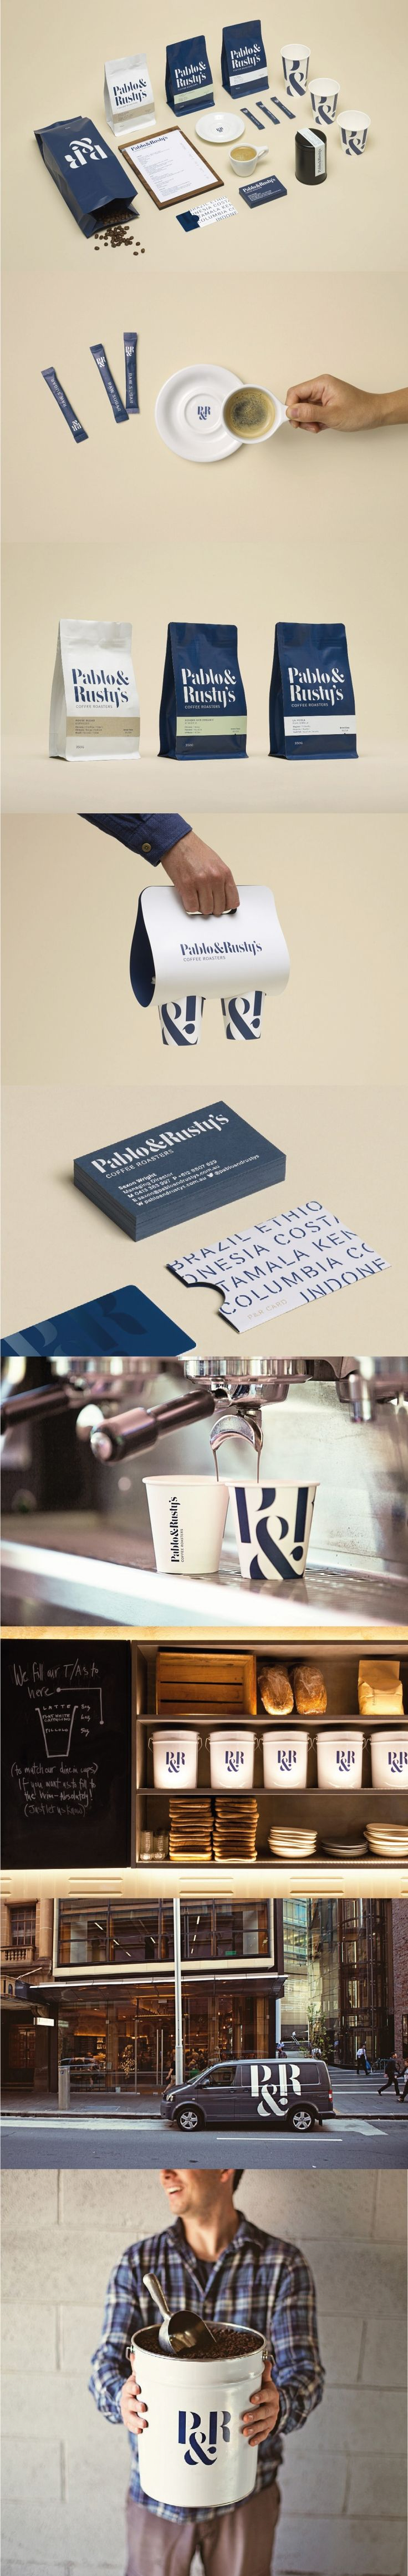 Pablo & Rusty's. A perfect cup of coffee isn't good enough. #branding #identity #design